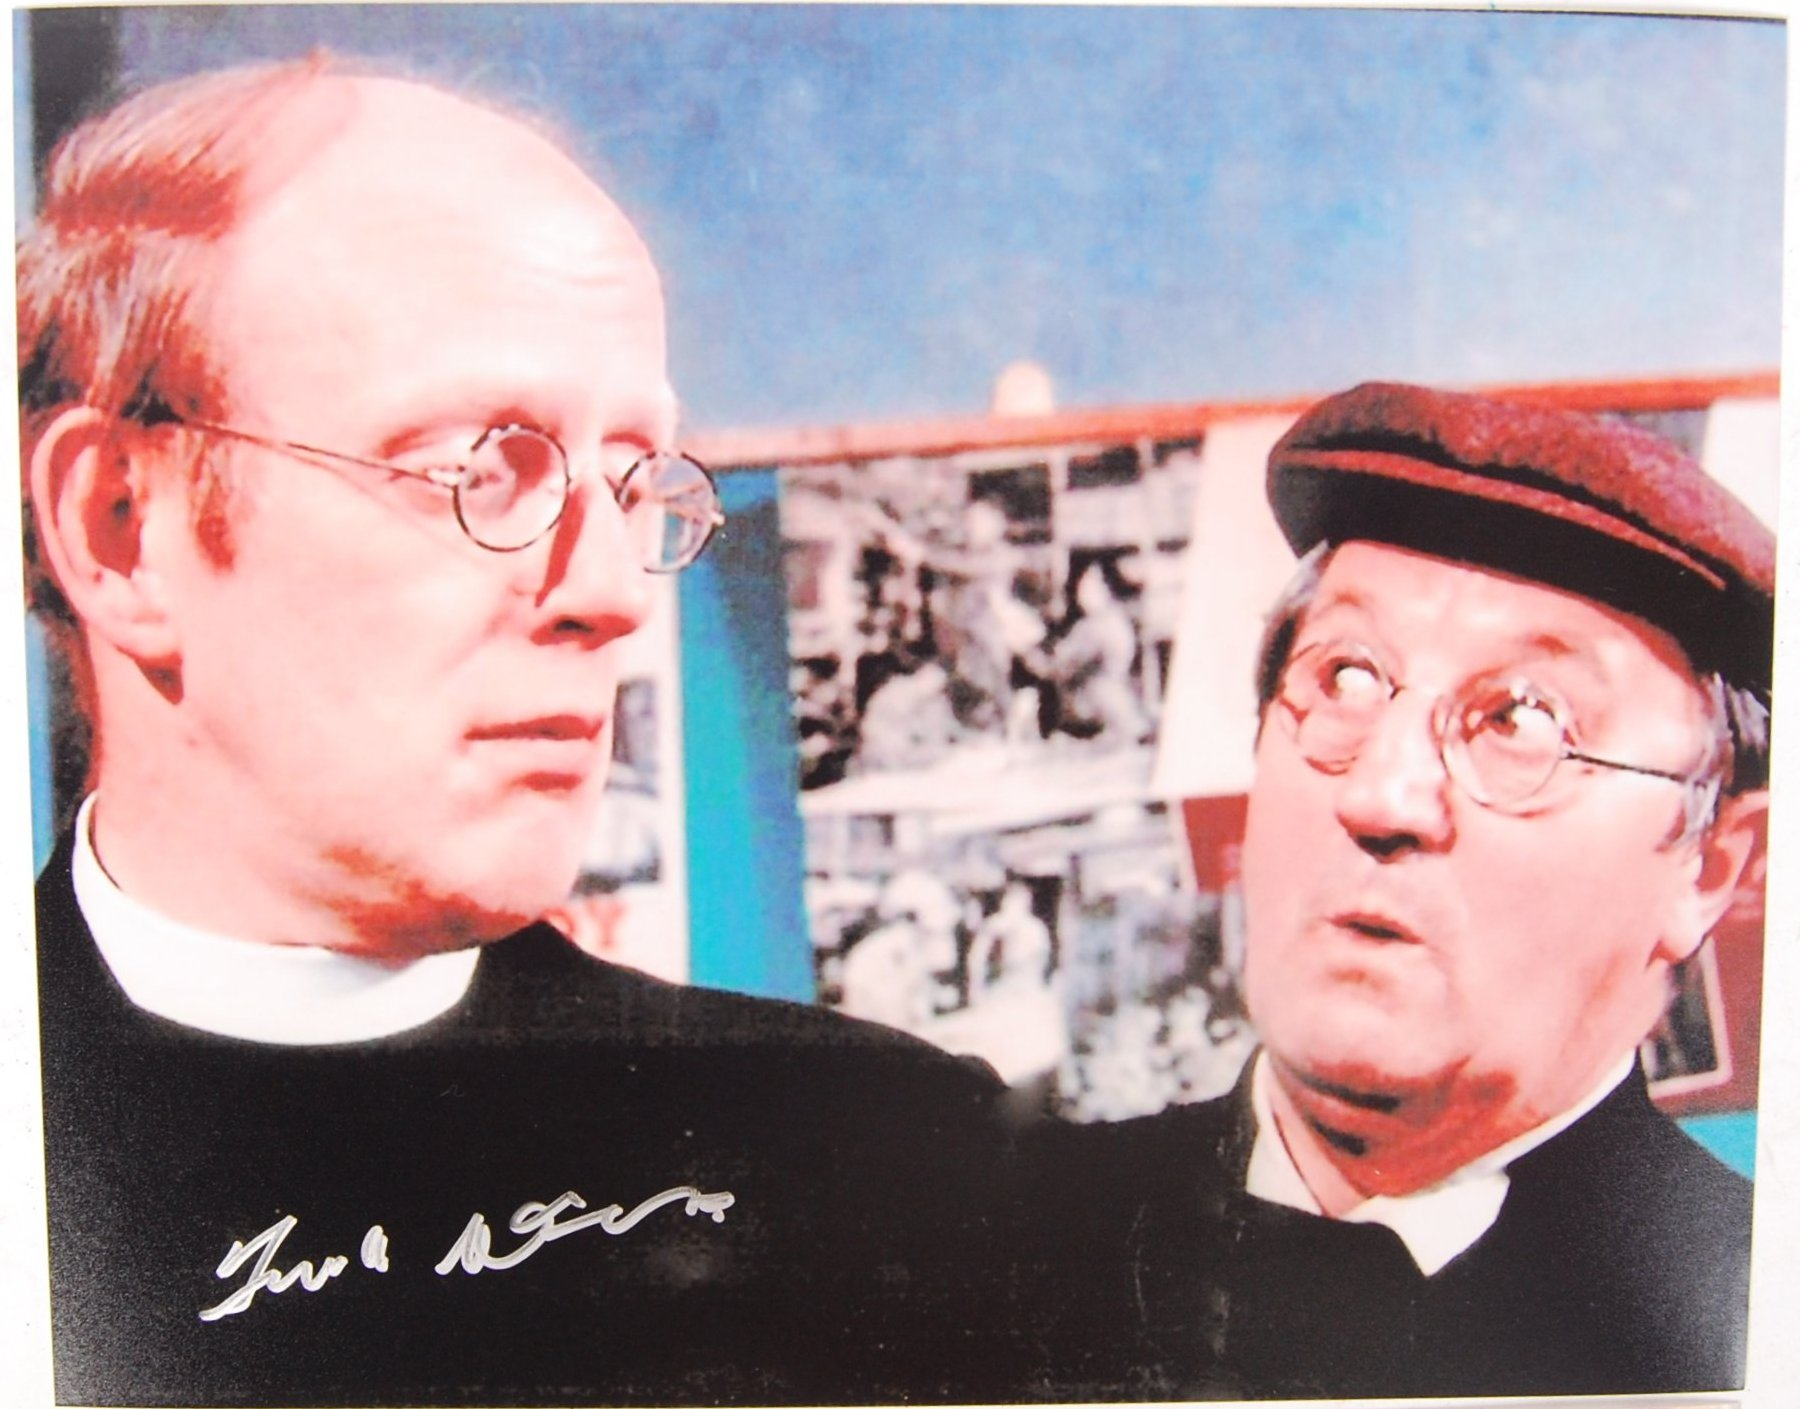 DAD'S ARMY ACTOR FRANK WILLIAMS AUTOGRAPHED PHOTOS - Image 2 of 3